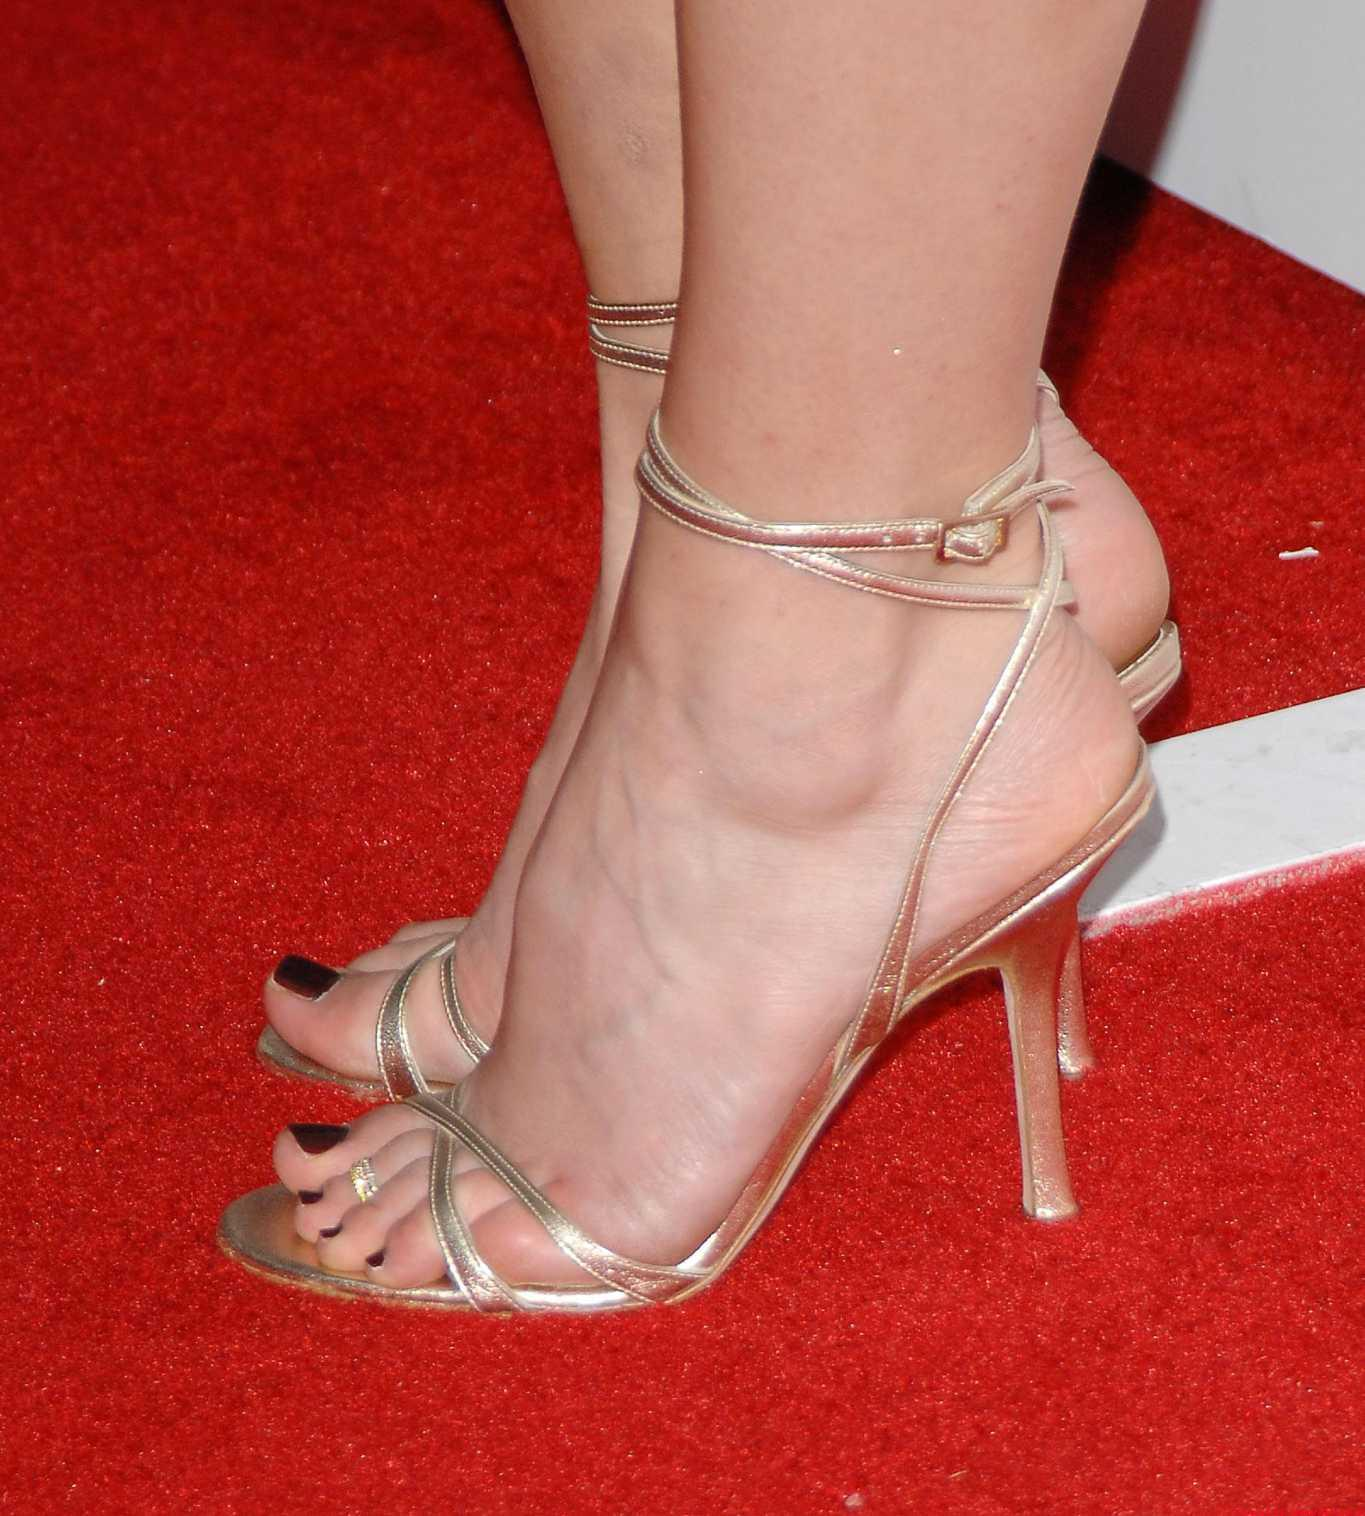 Jewel kilcher feet legs and shoes photos